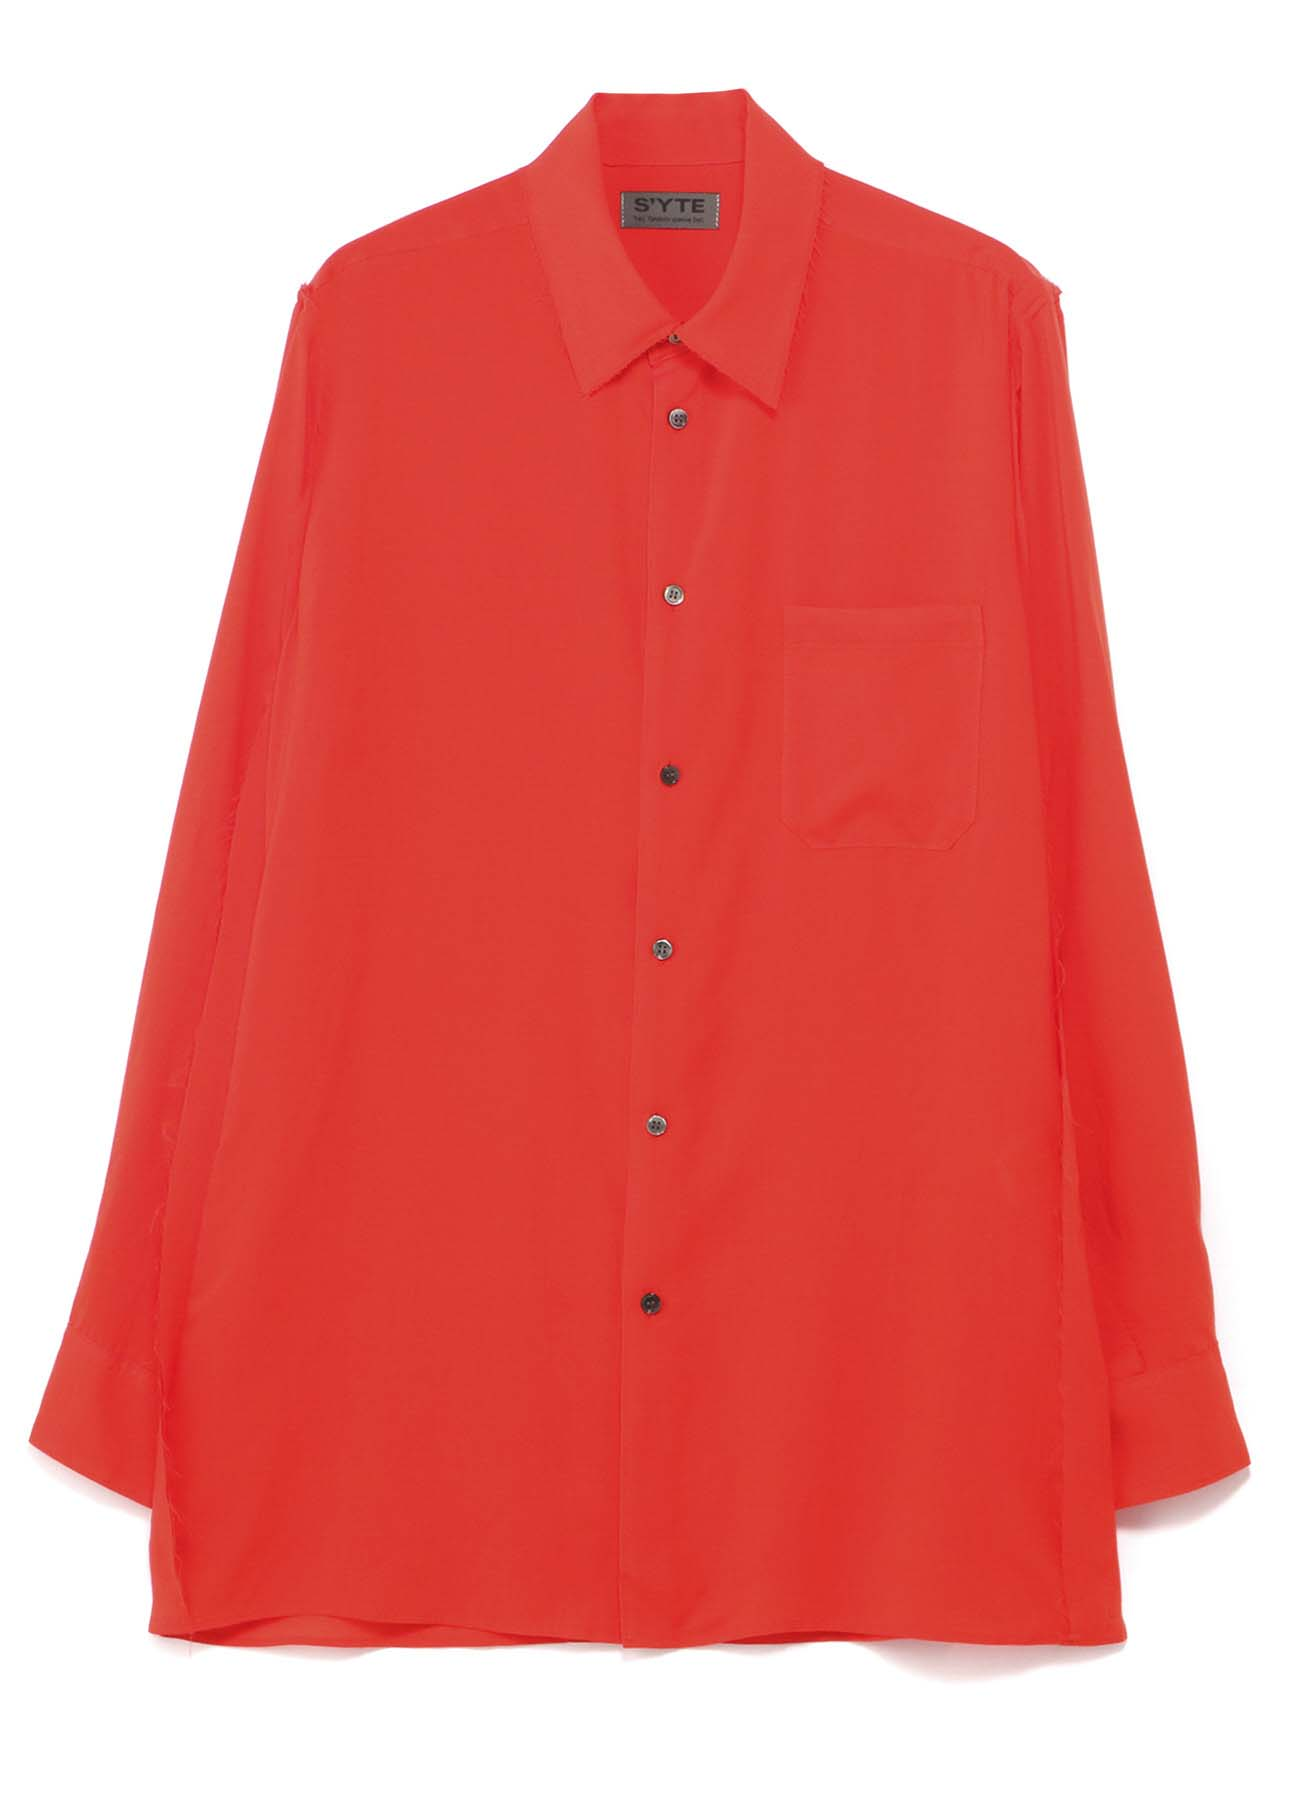 Tencel /Loan Cut off Regular Collar Shirt